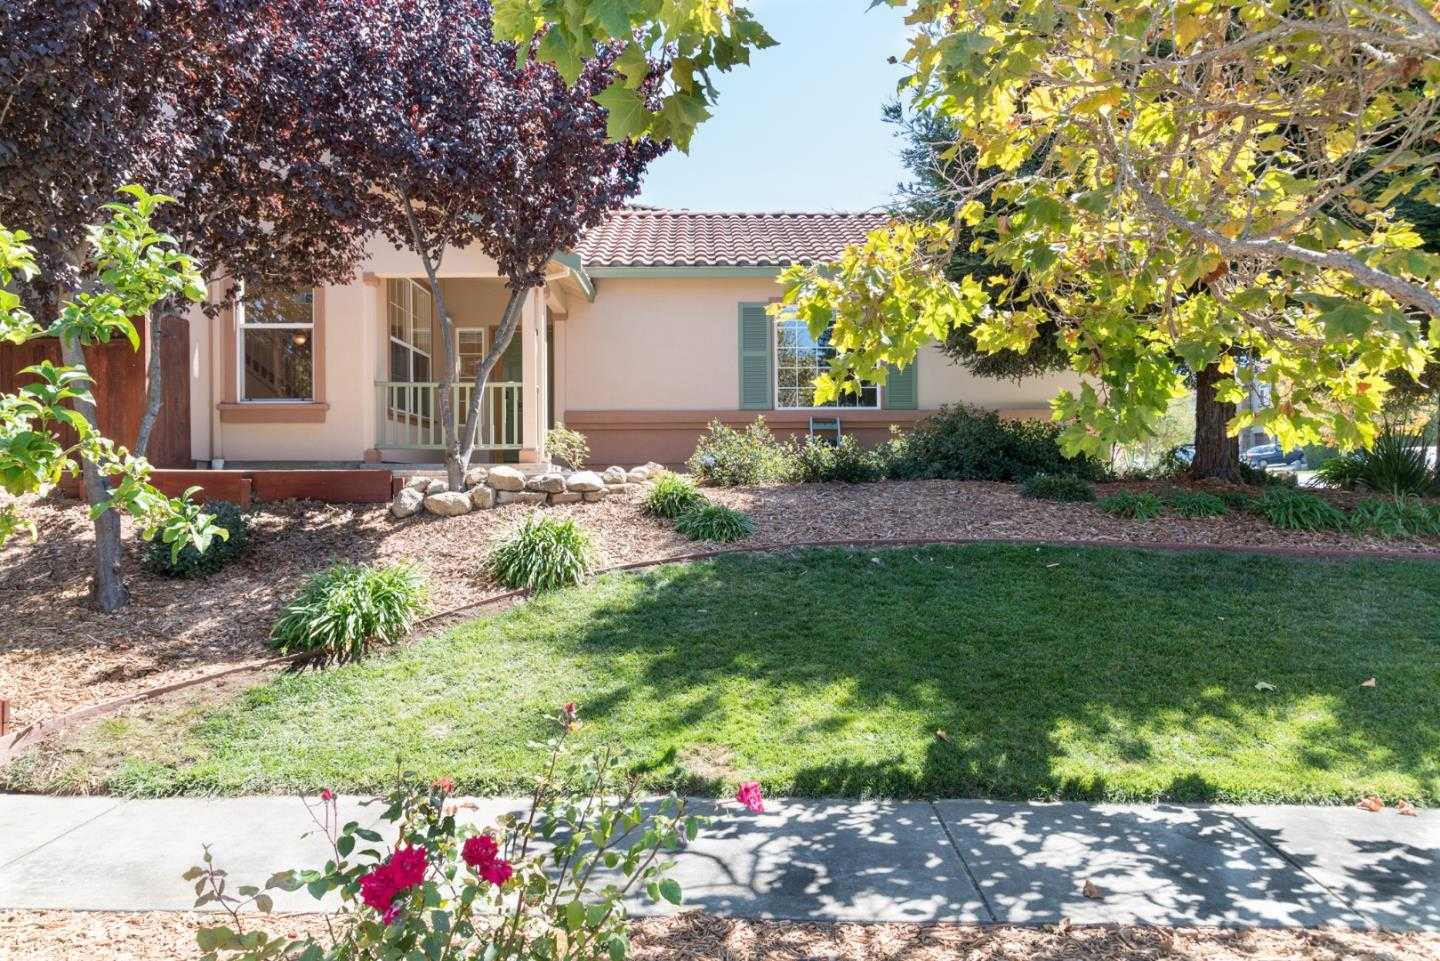 $529,000 - 3Br/2Ba -  for Sale in Salinas